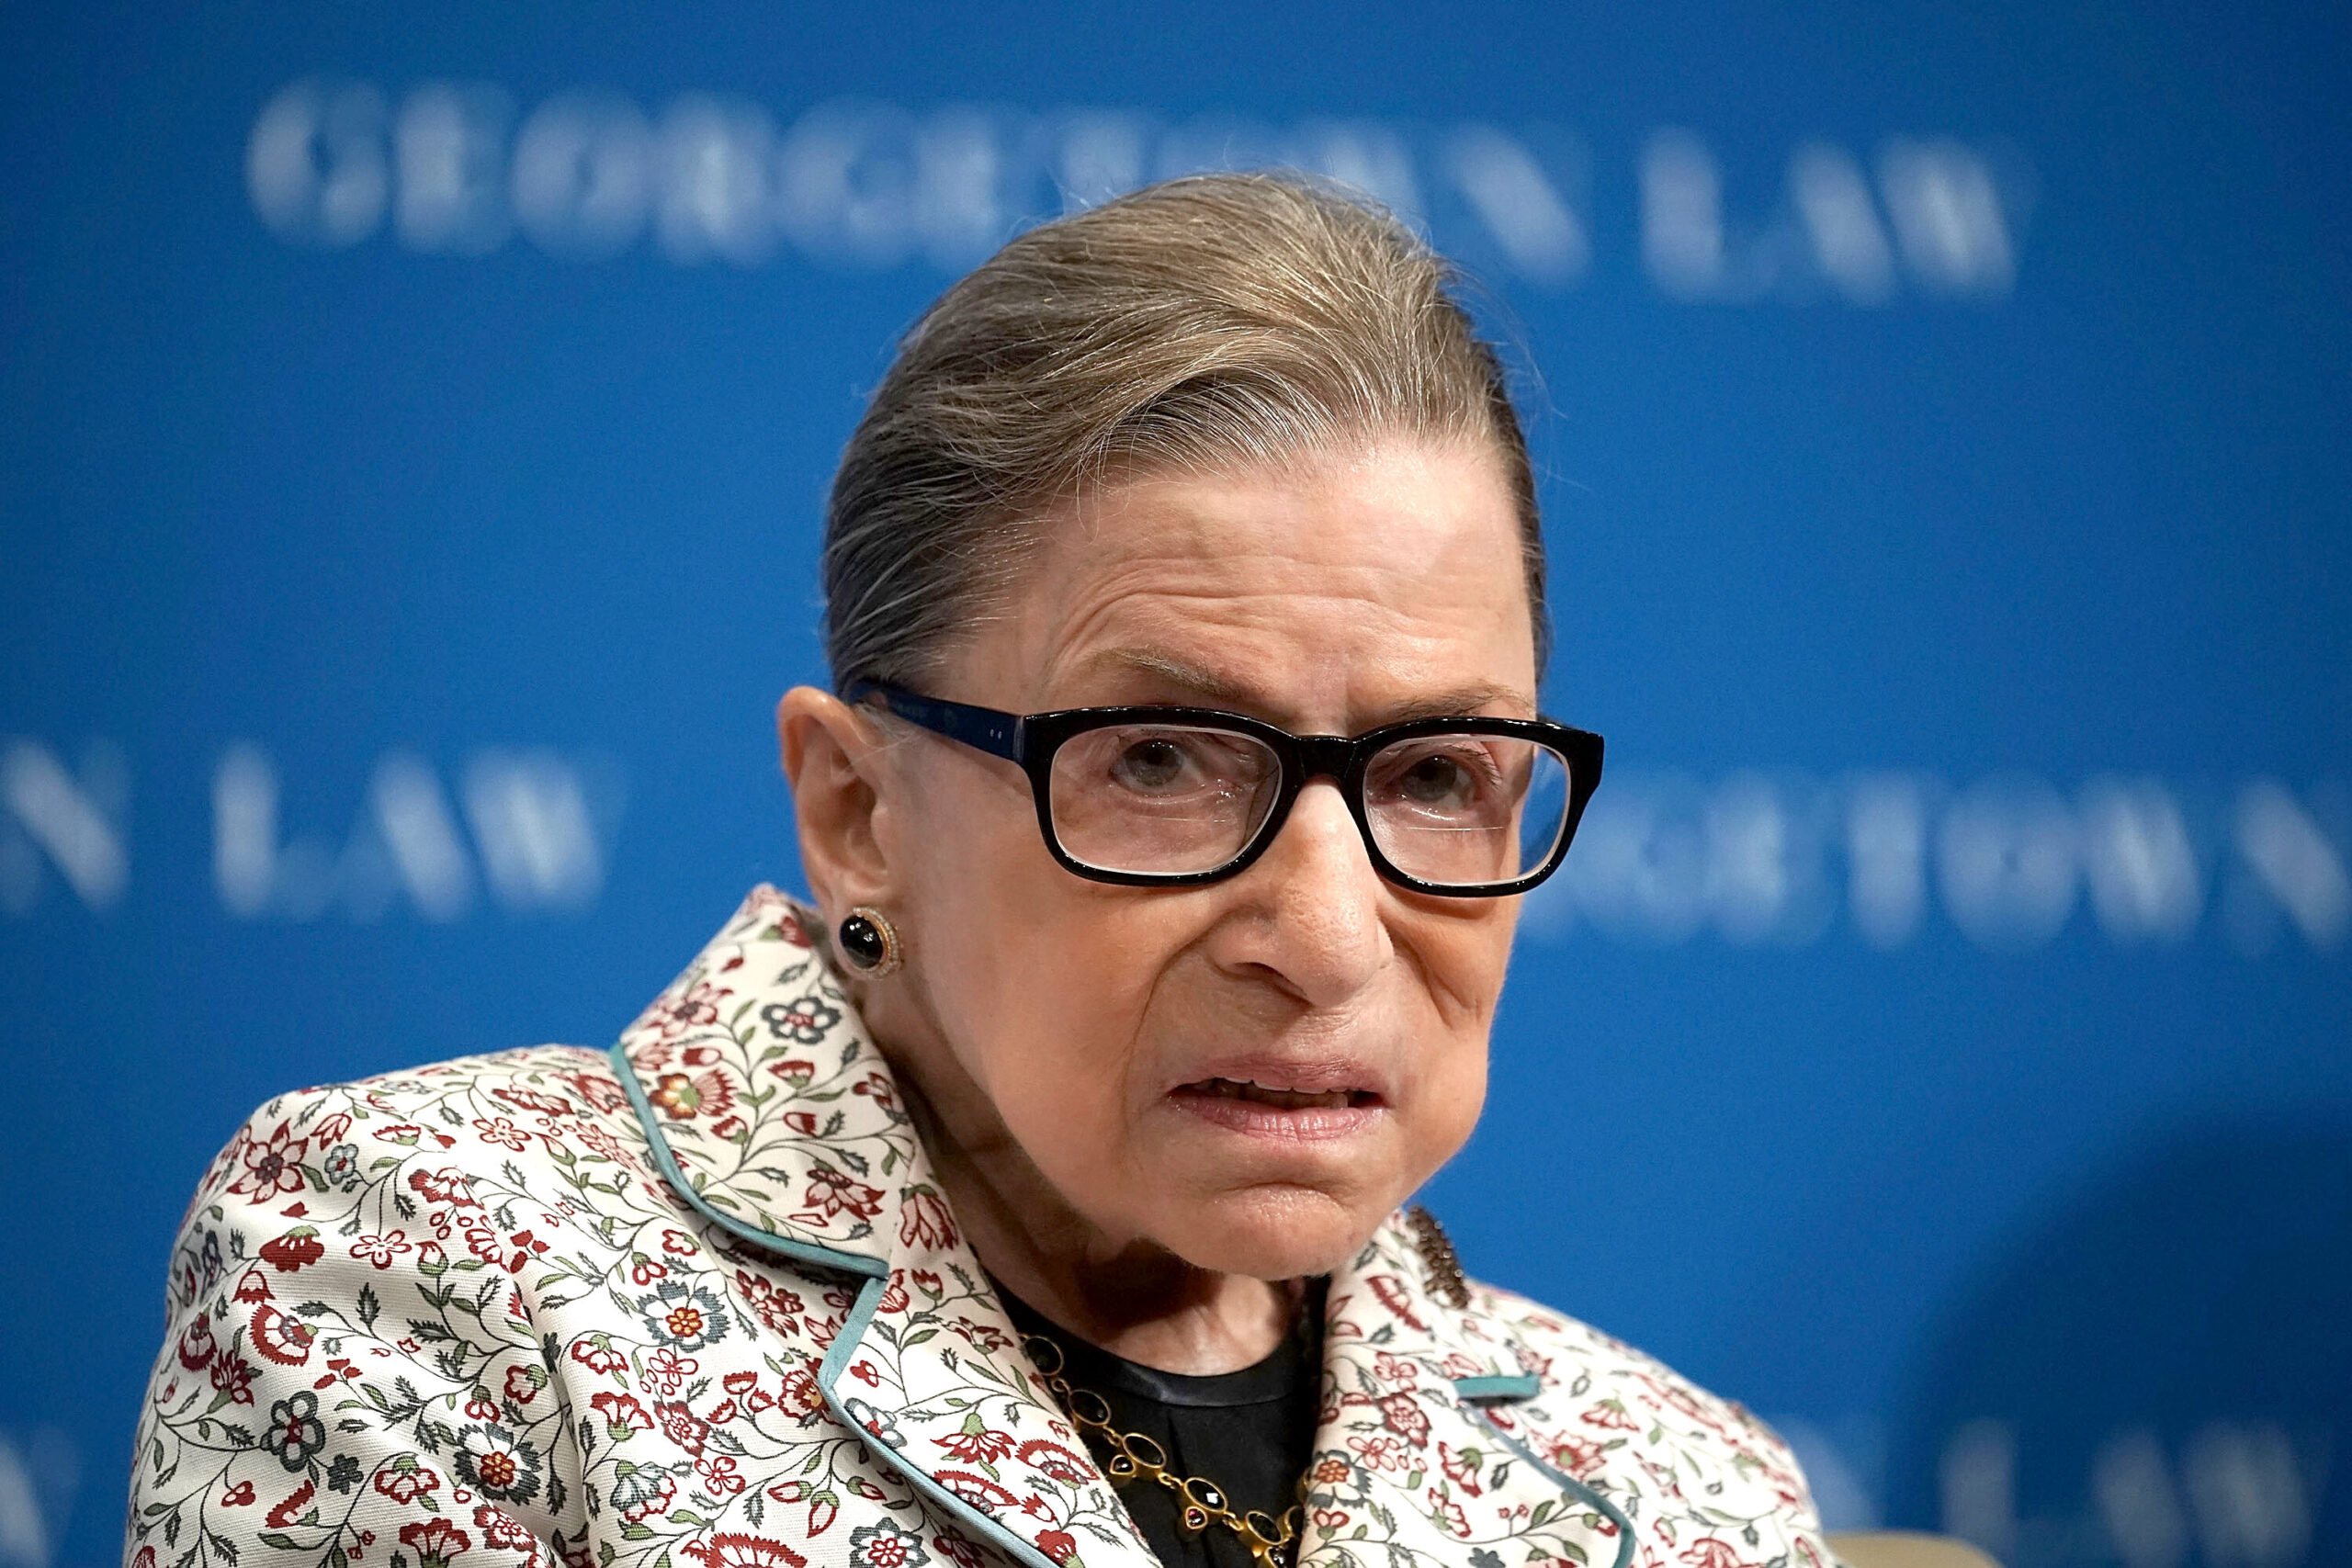 <i>Alex Wong/Getty Images</i><br/>One year after the death of Supreme Court Justice Ruth Bader Ginsburg